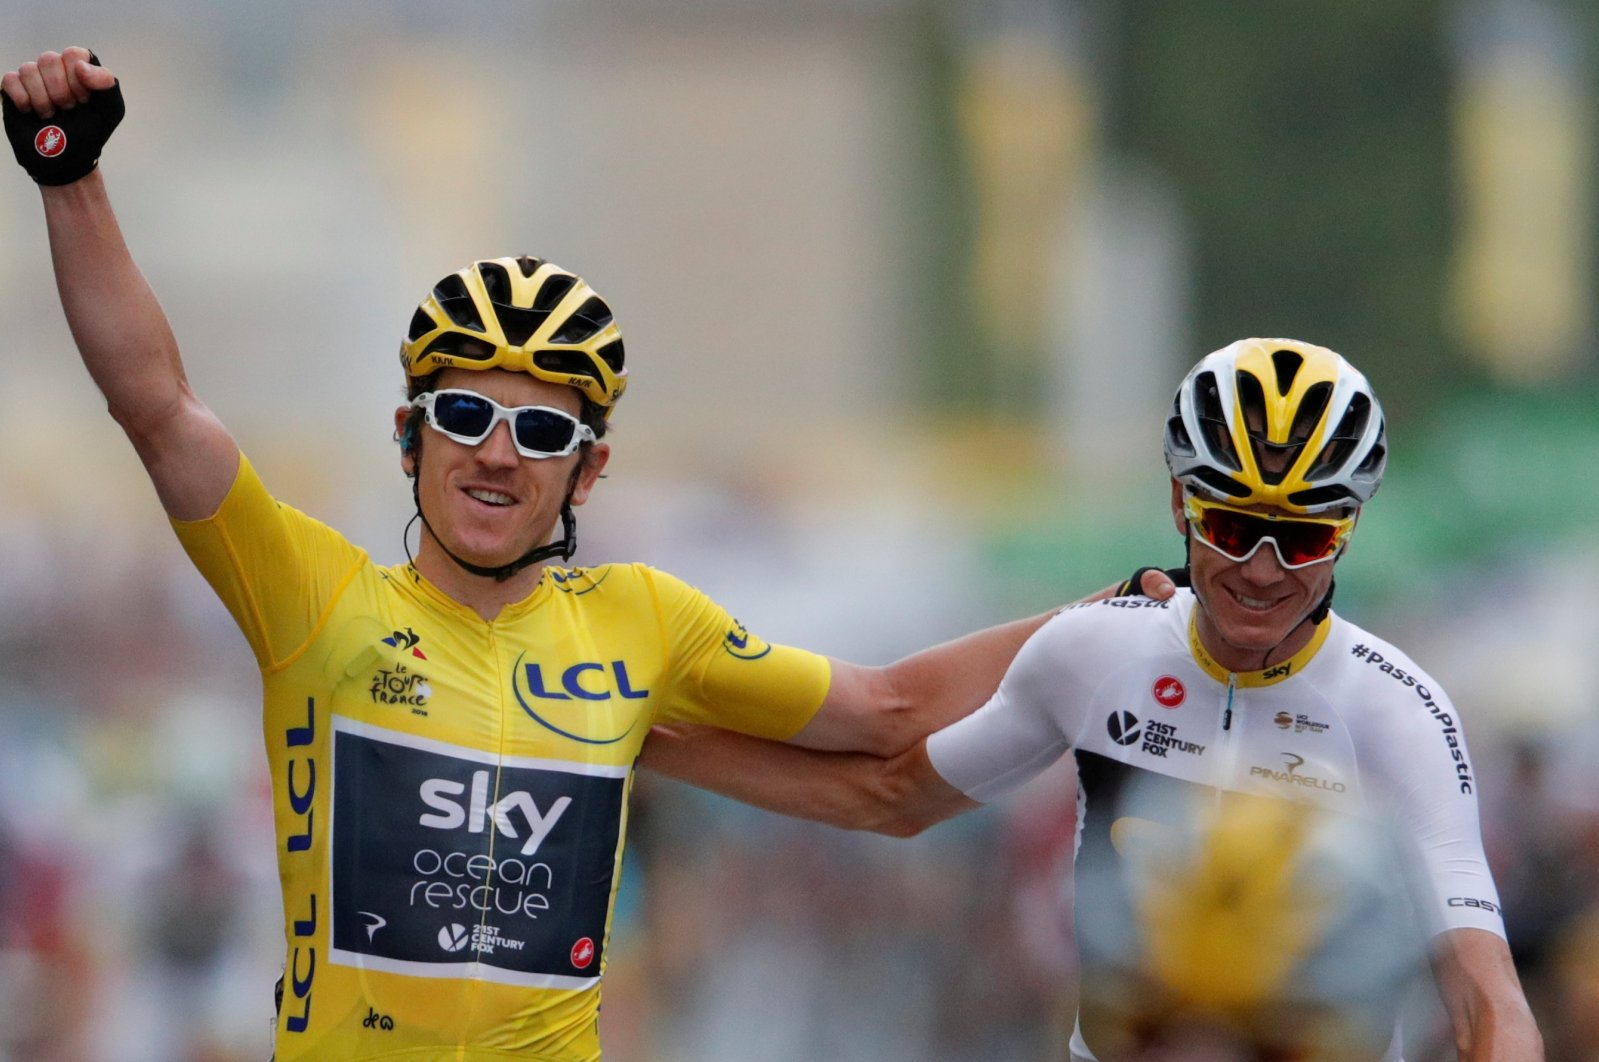 Geraint Thomas (L) and Chris Froome pose after a stage of Tour De France, in Paris, France, July 29, 2018. (Reuters Photo)